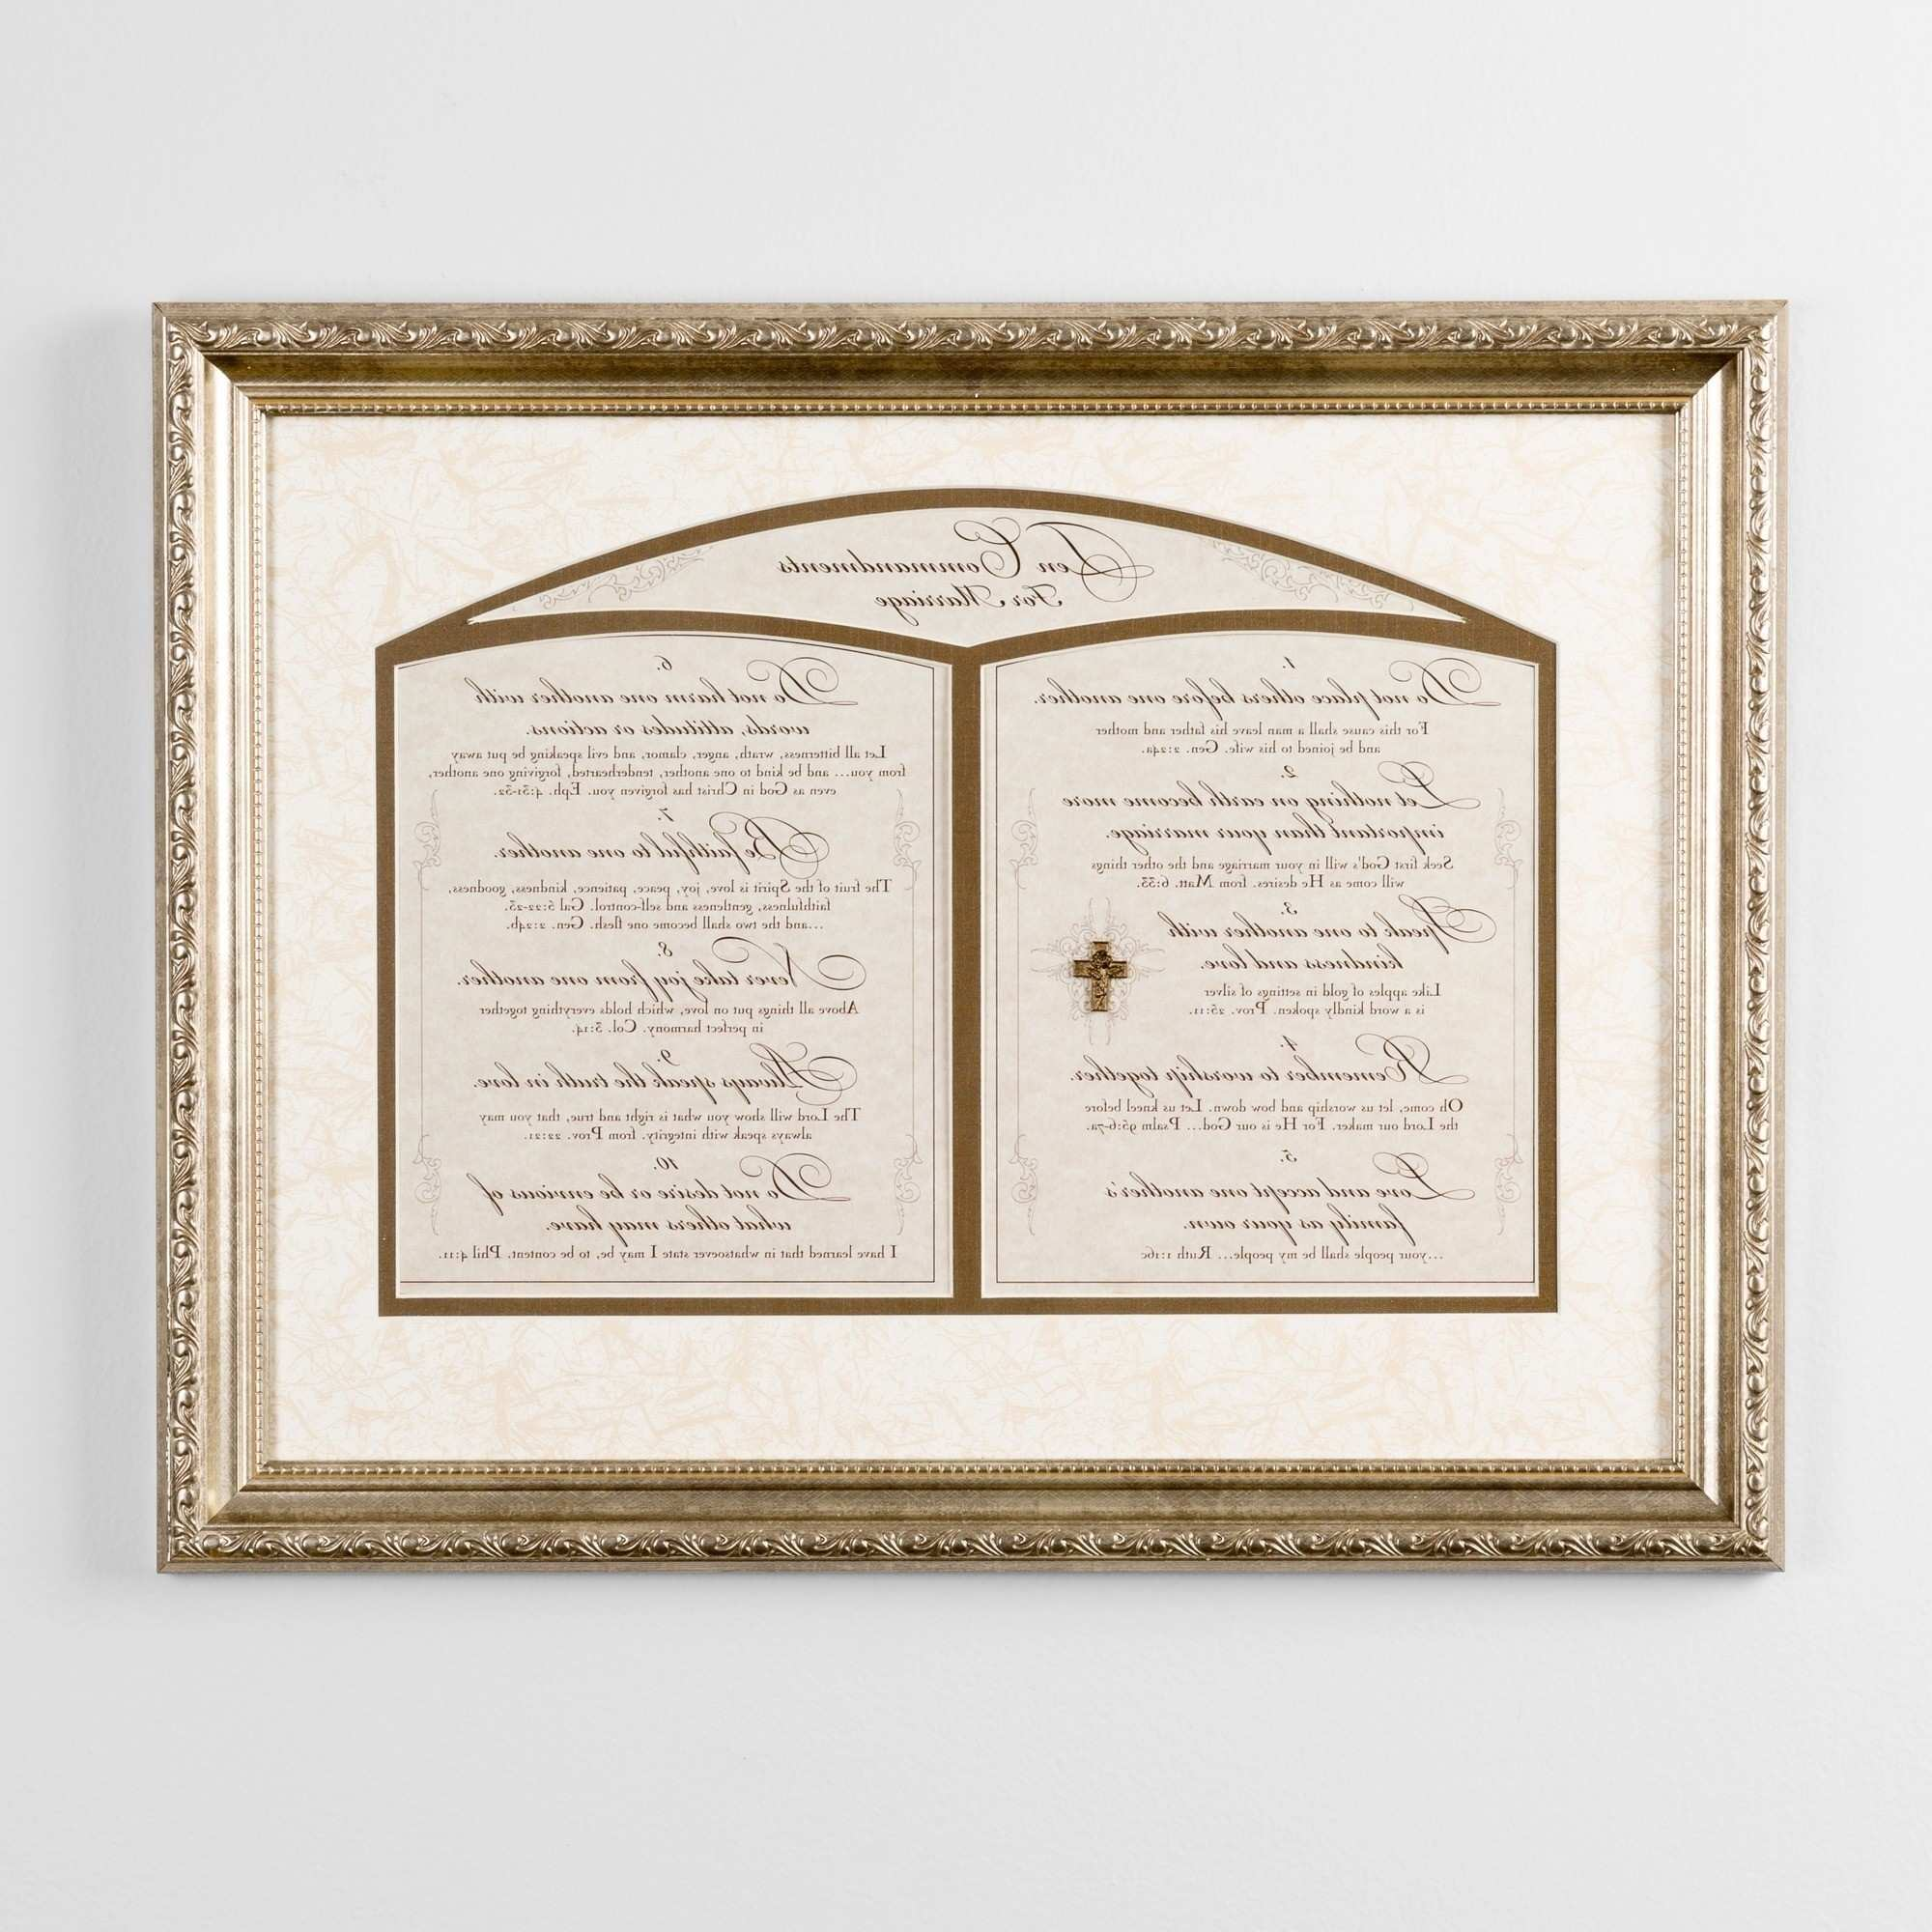 Image Gallery of 10 mandments Wall Art View 9 of 15 s